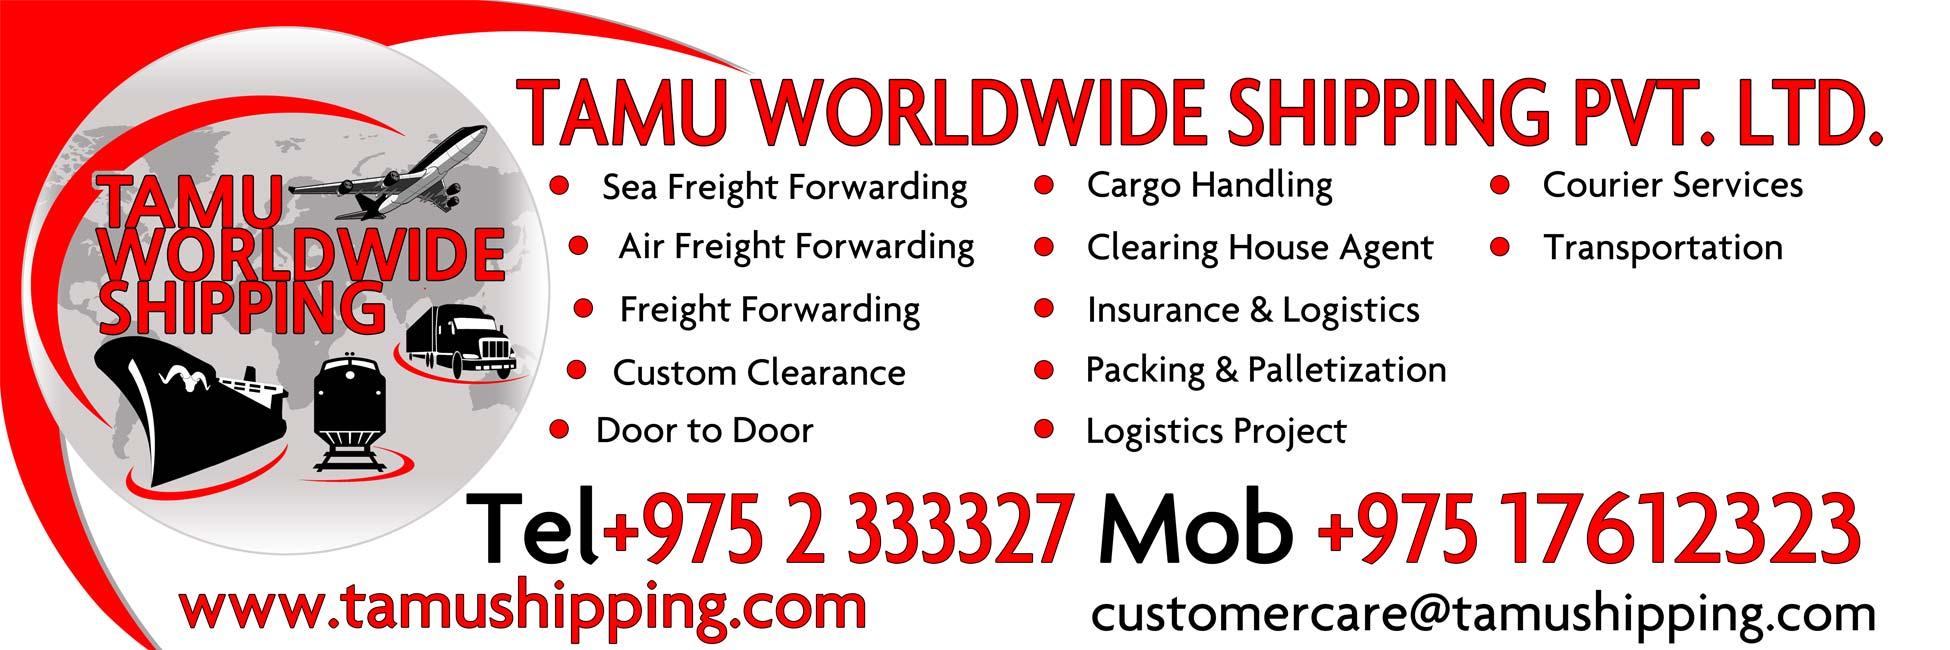 Tamu Worldwide Shipping Pvt. Ltd. Thimphu Bhutan